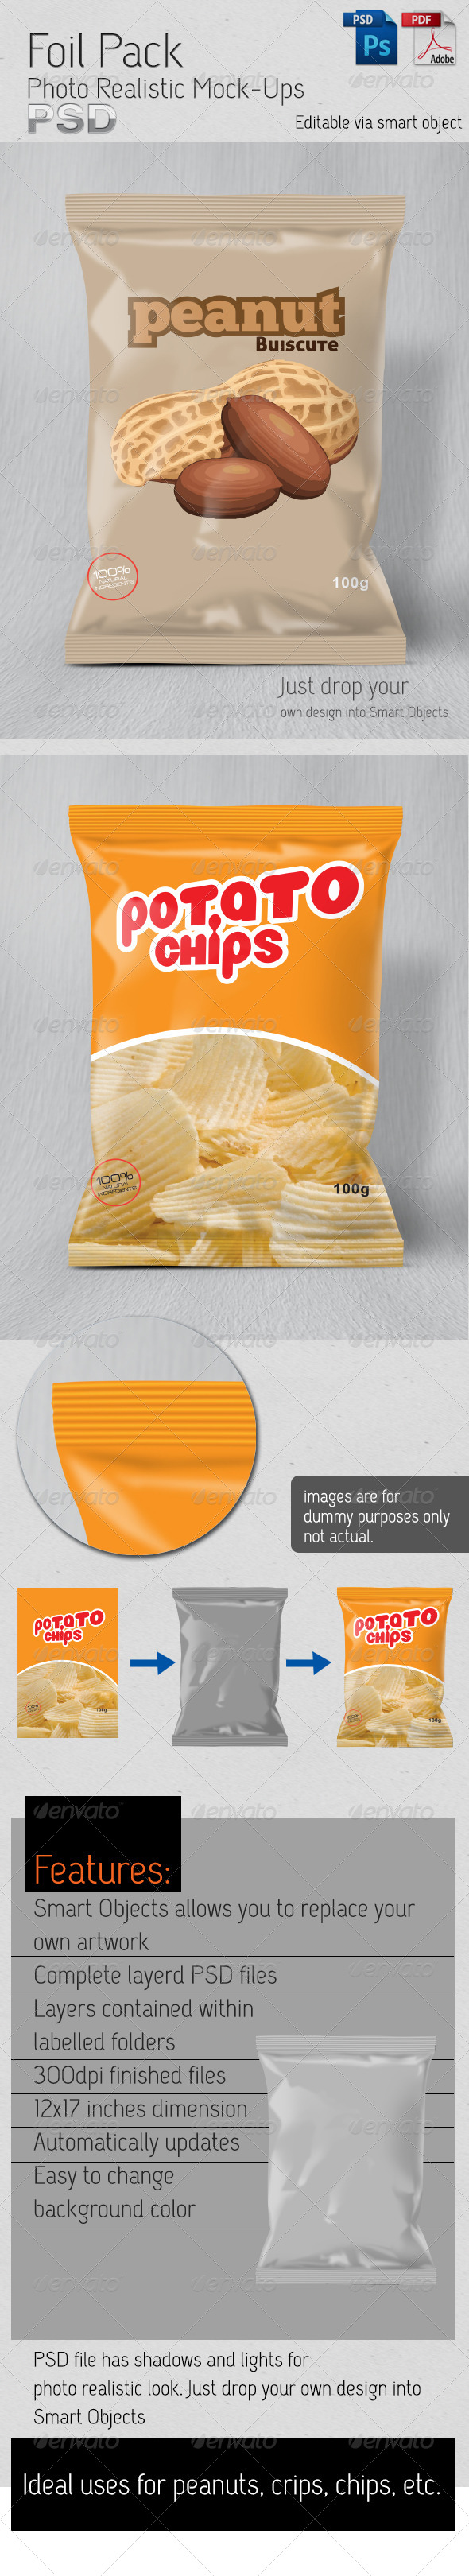 GraphicRiver Foil Pack Photo Realistic Mock-Up 6177351